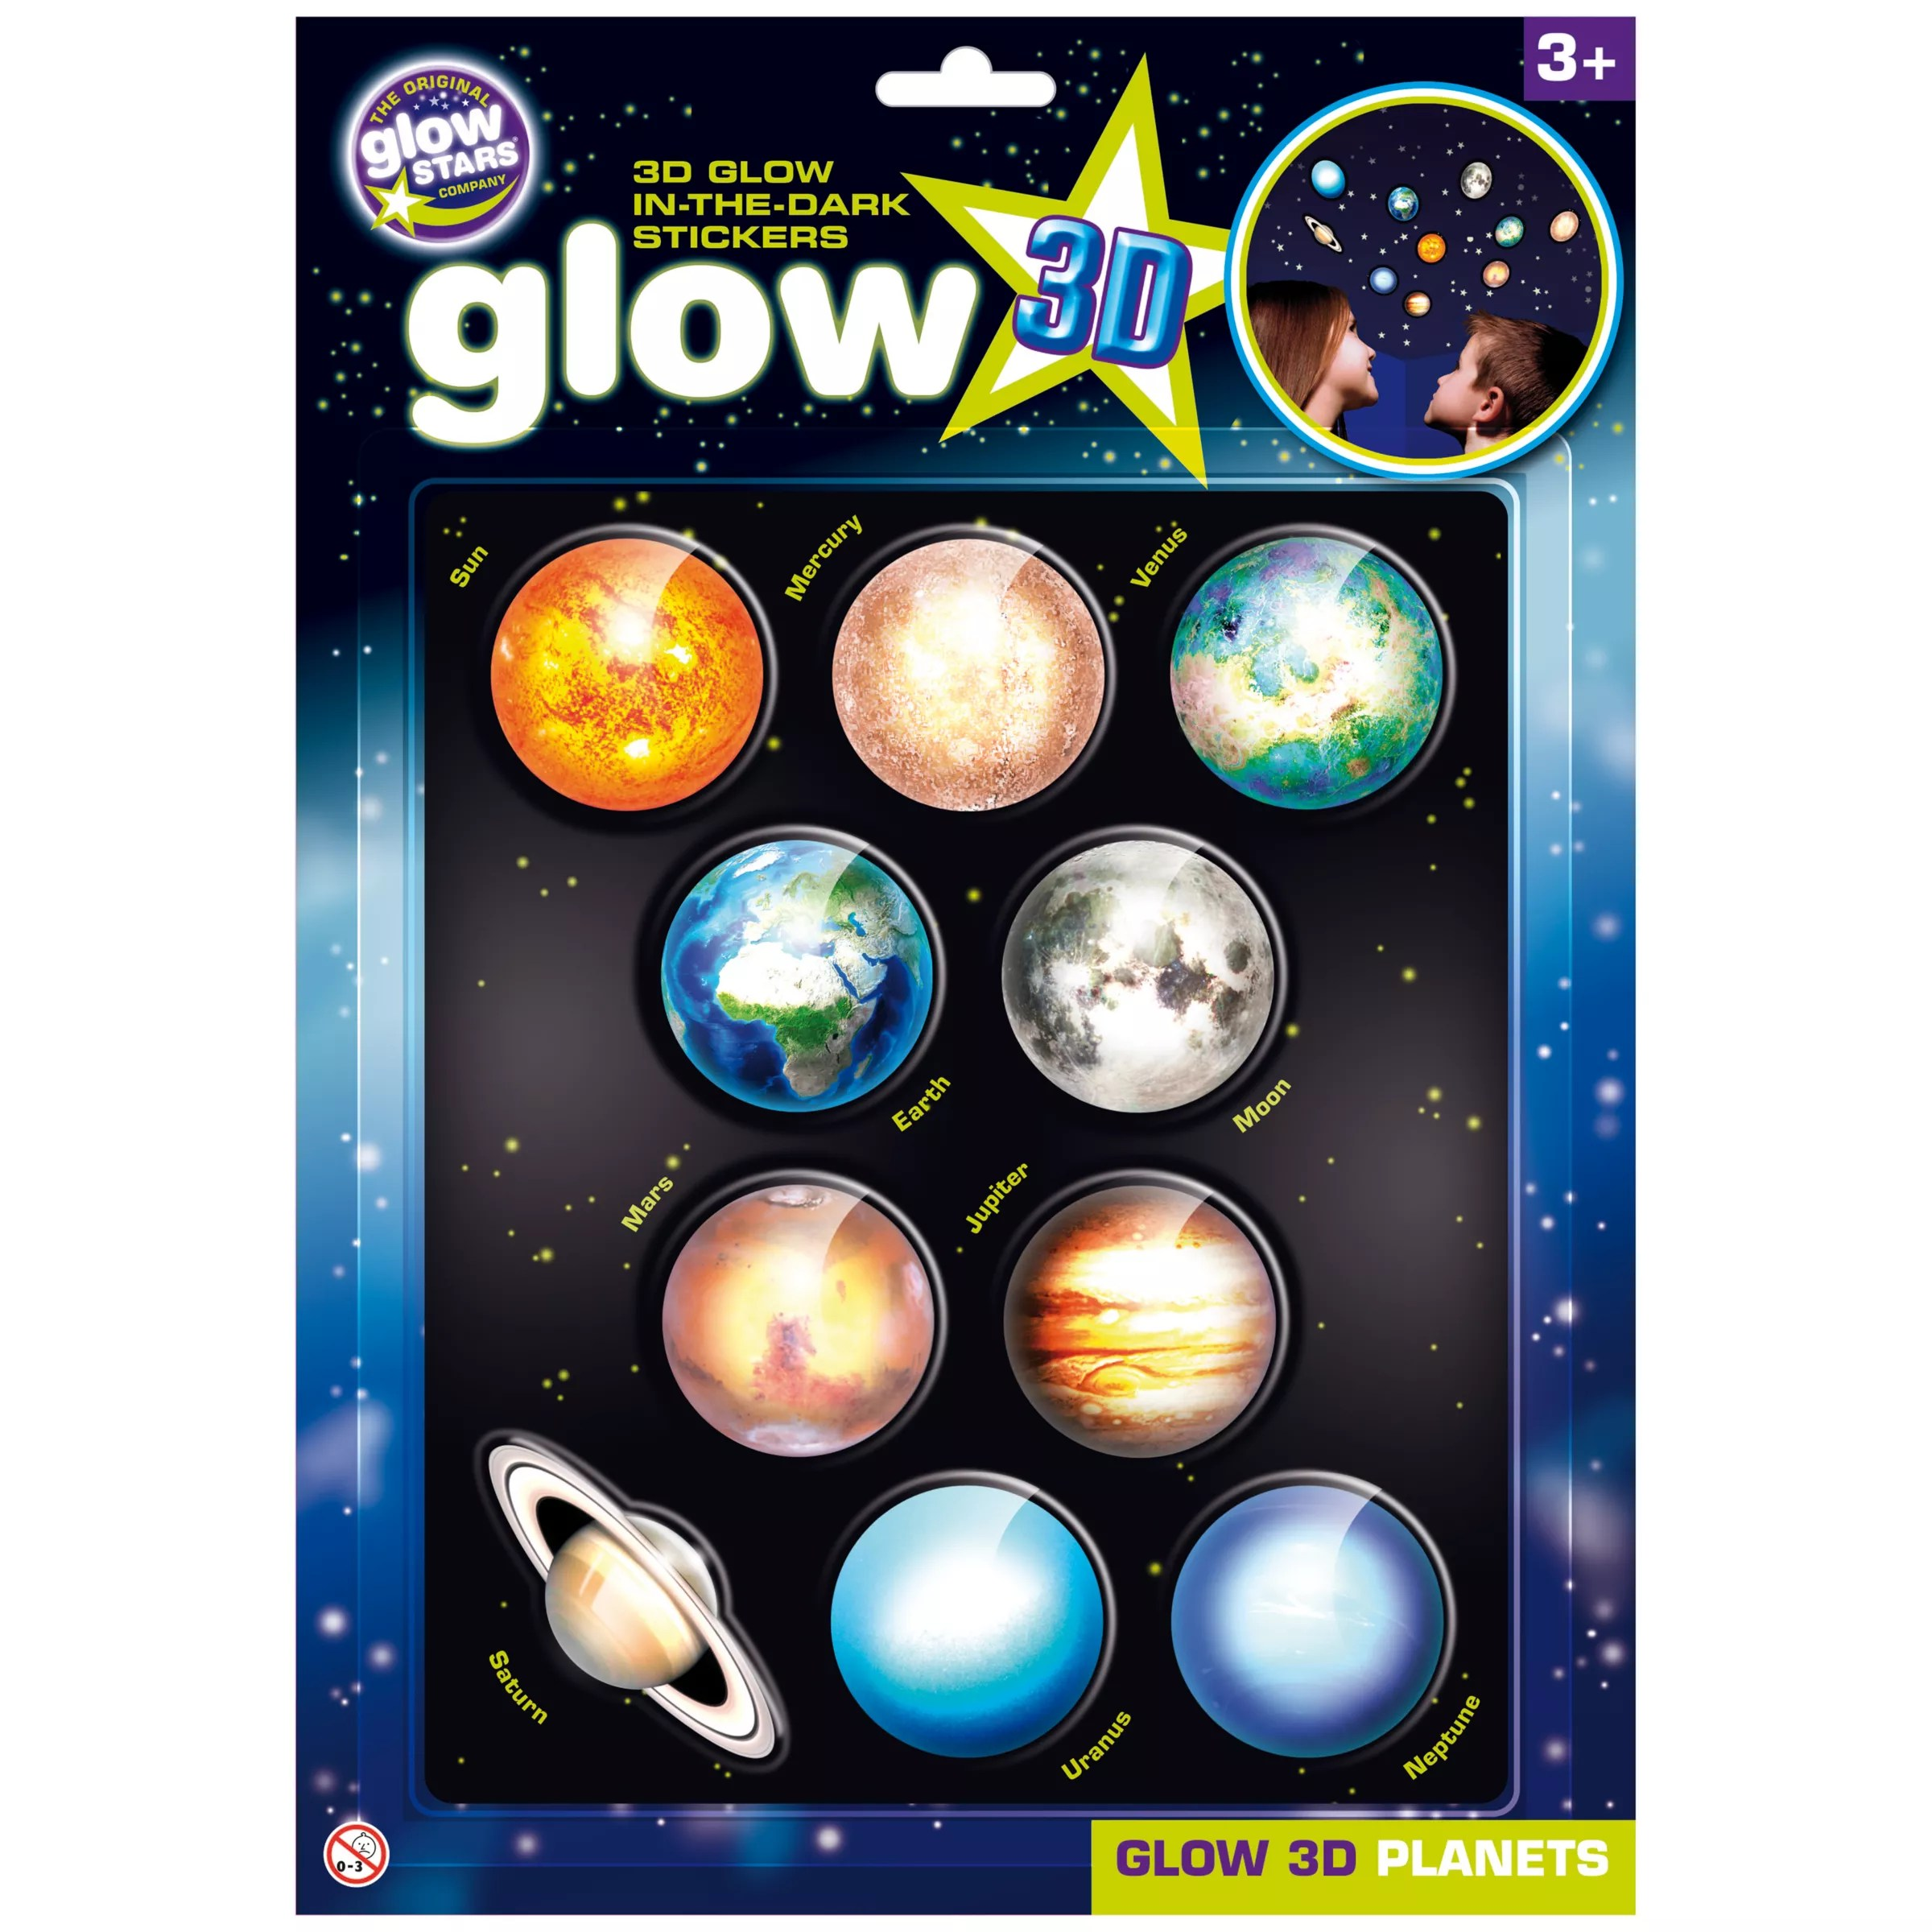 Cosmic Glow in the Dark 3D Planets Set at John Lewis